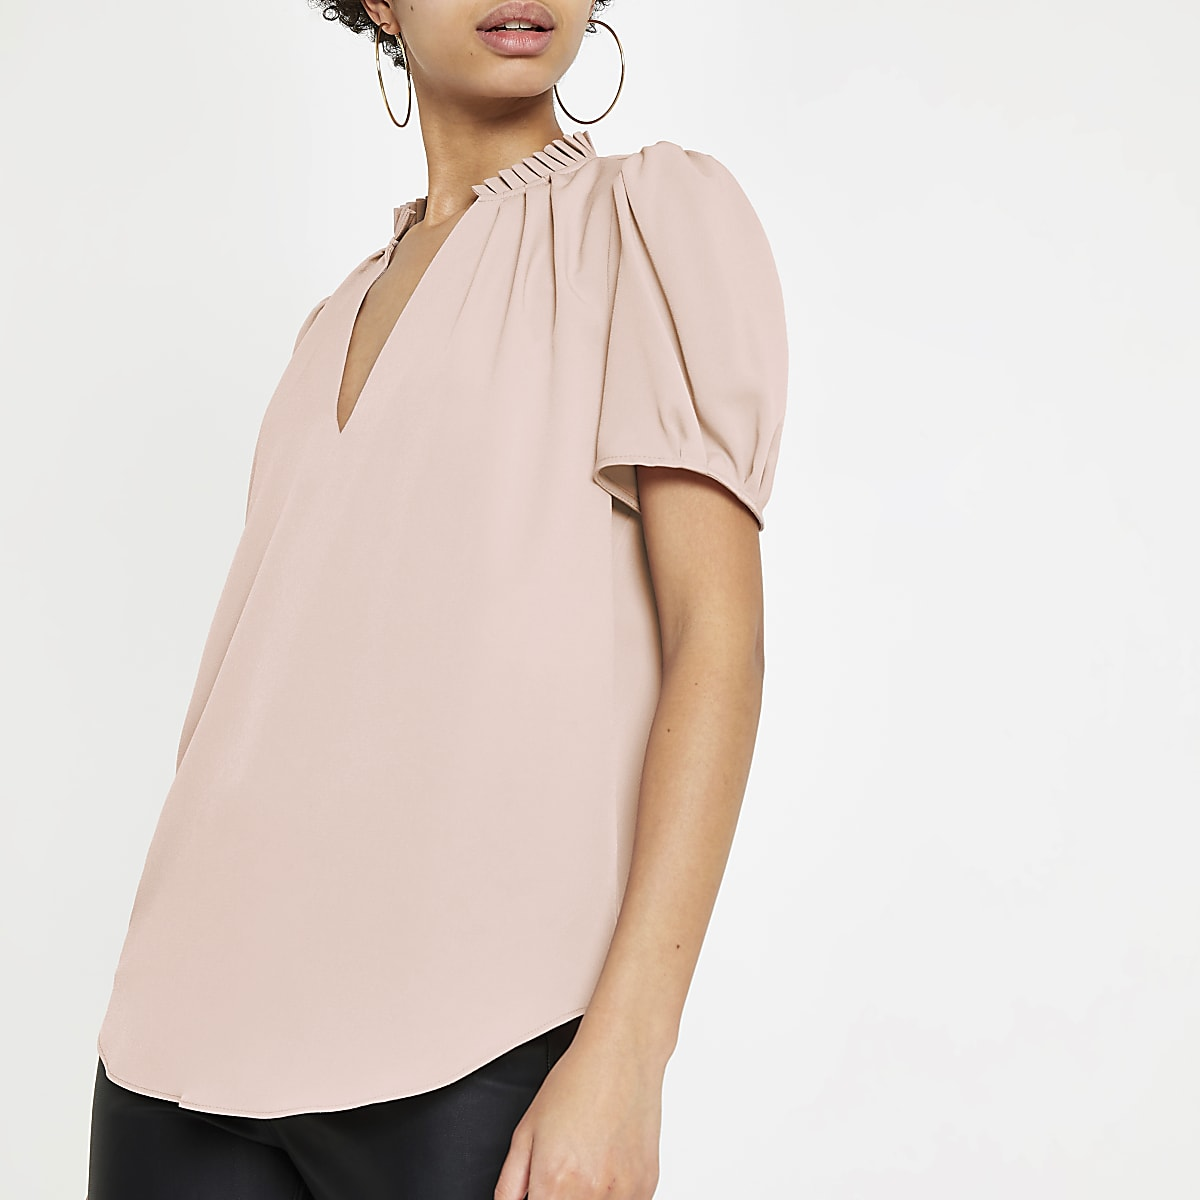 Pink V neck shell top